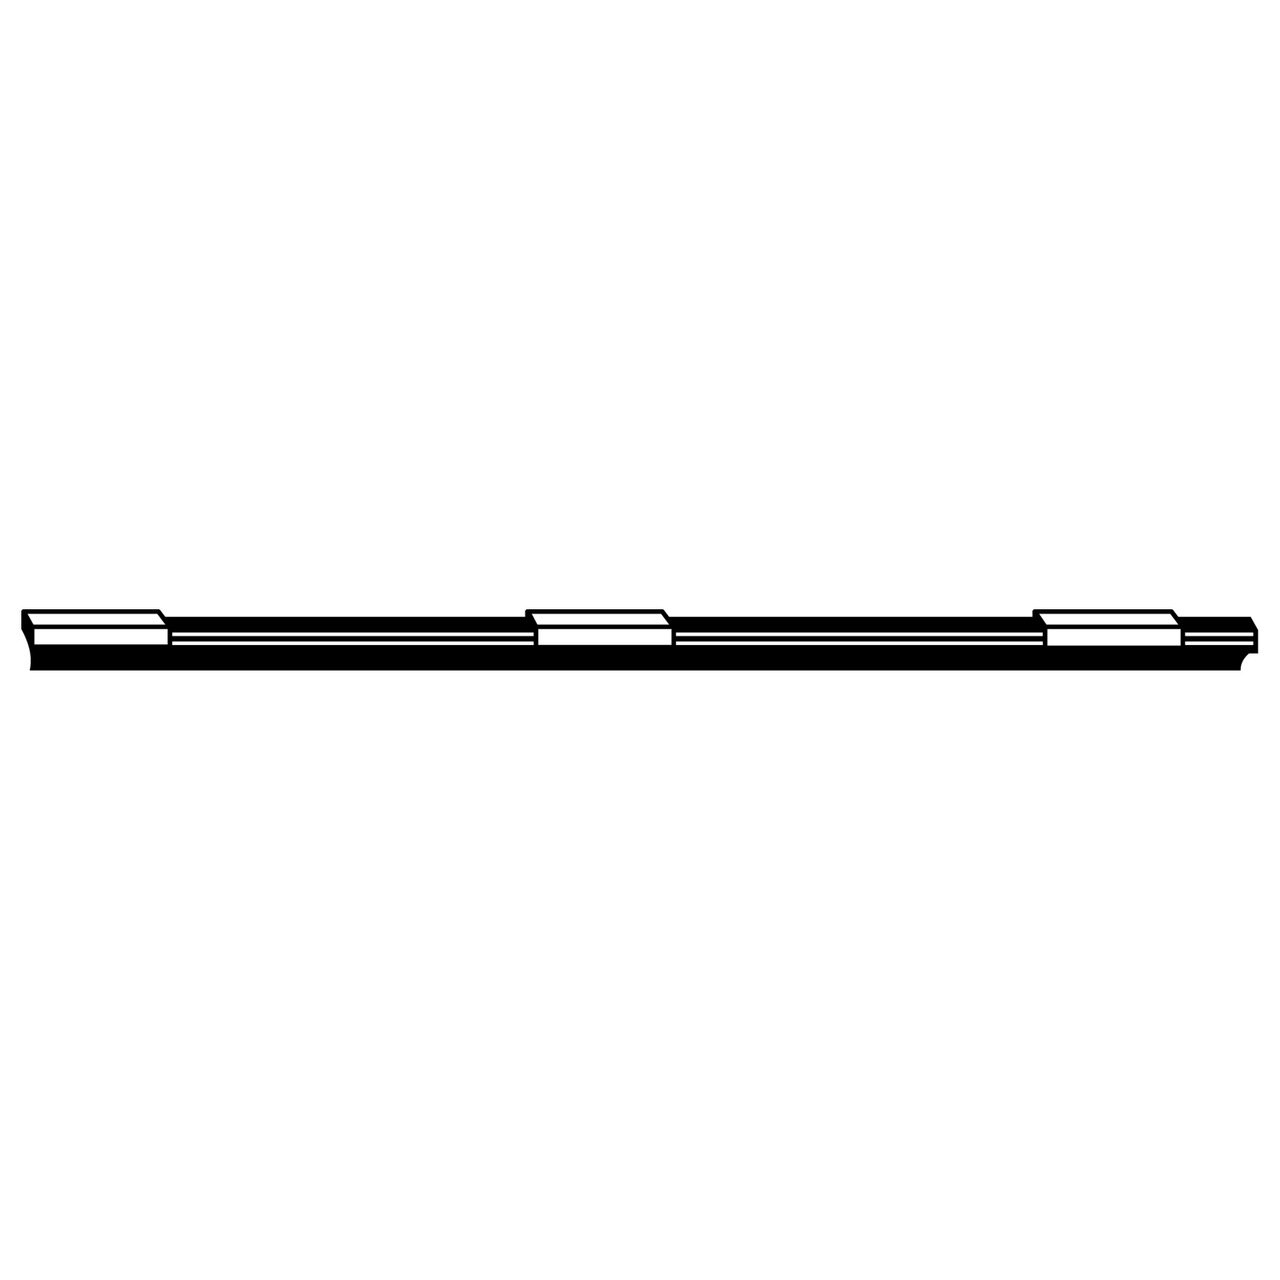 24 in Pack of 1 ACDelco 8-5246 Professional Narrow OE Wiper Blade Refill